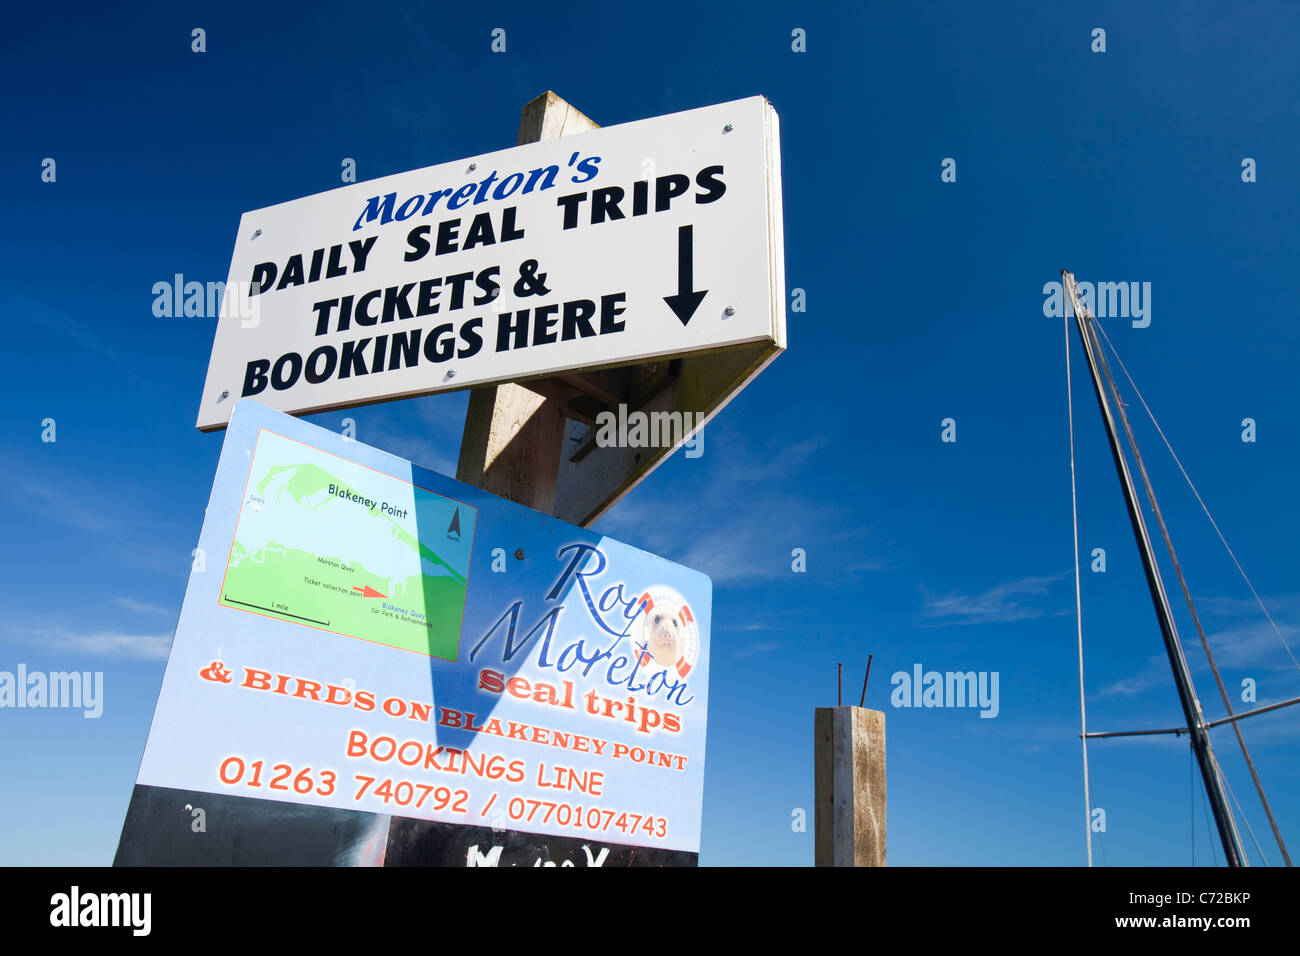 Adverts for seal watching trips from Blakeney Harbour, North Norfolk coast, UK. Stock Photo